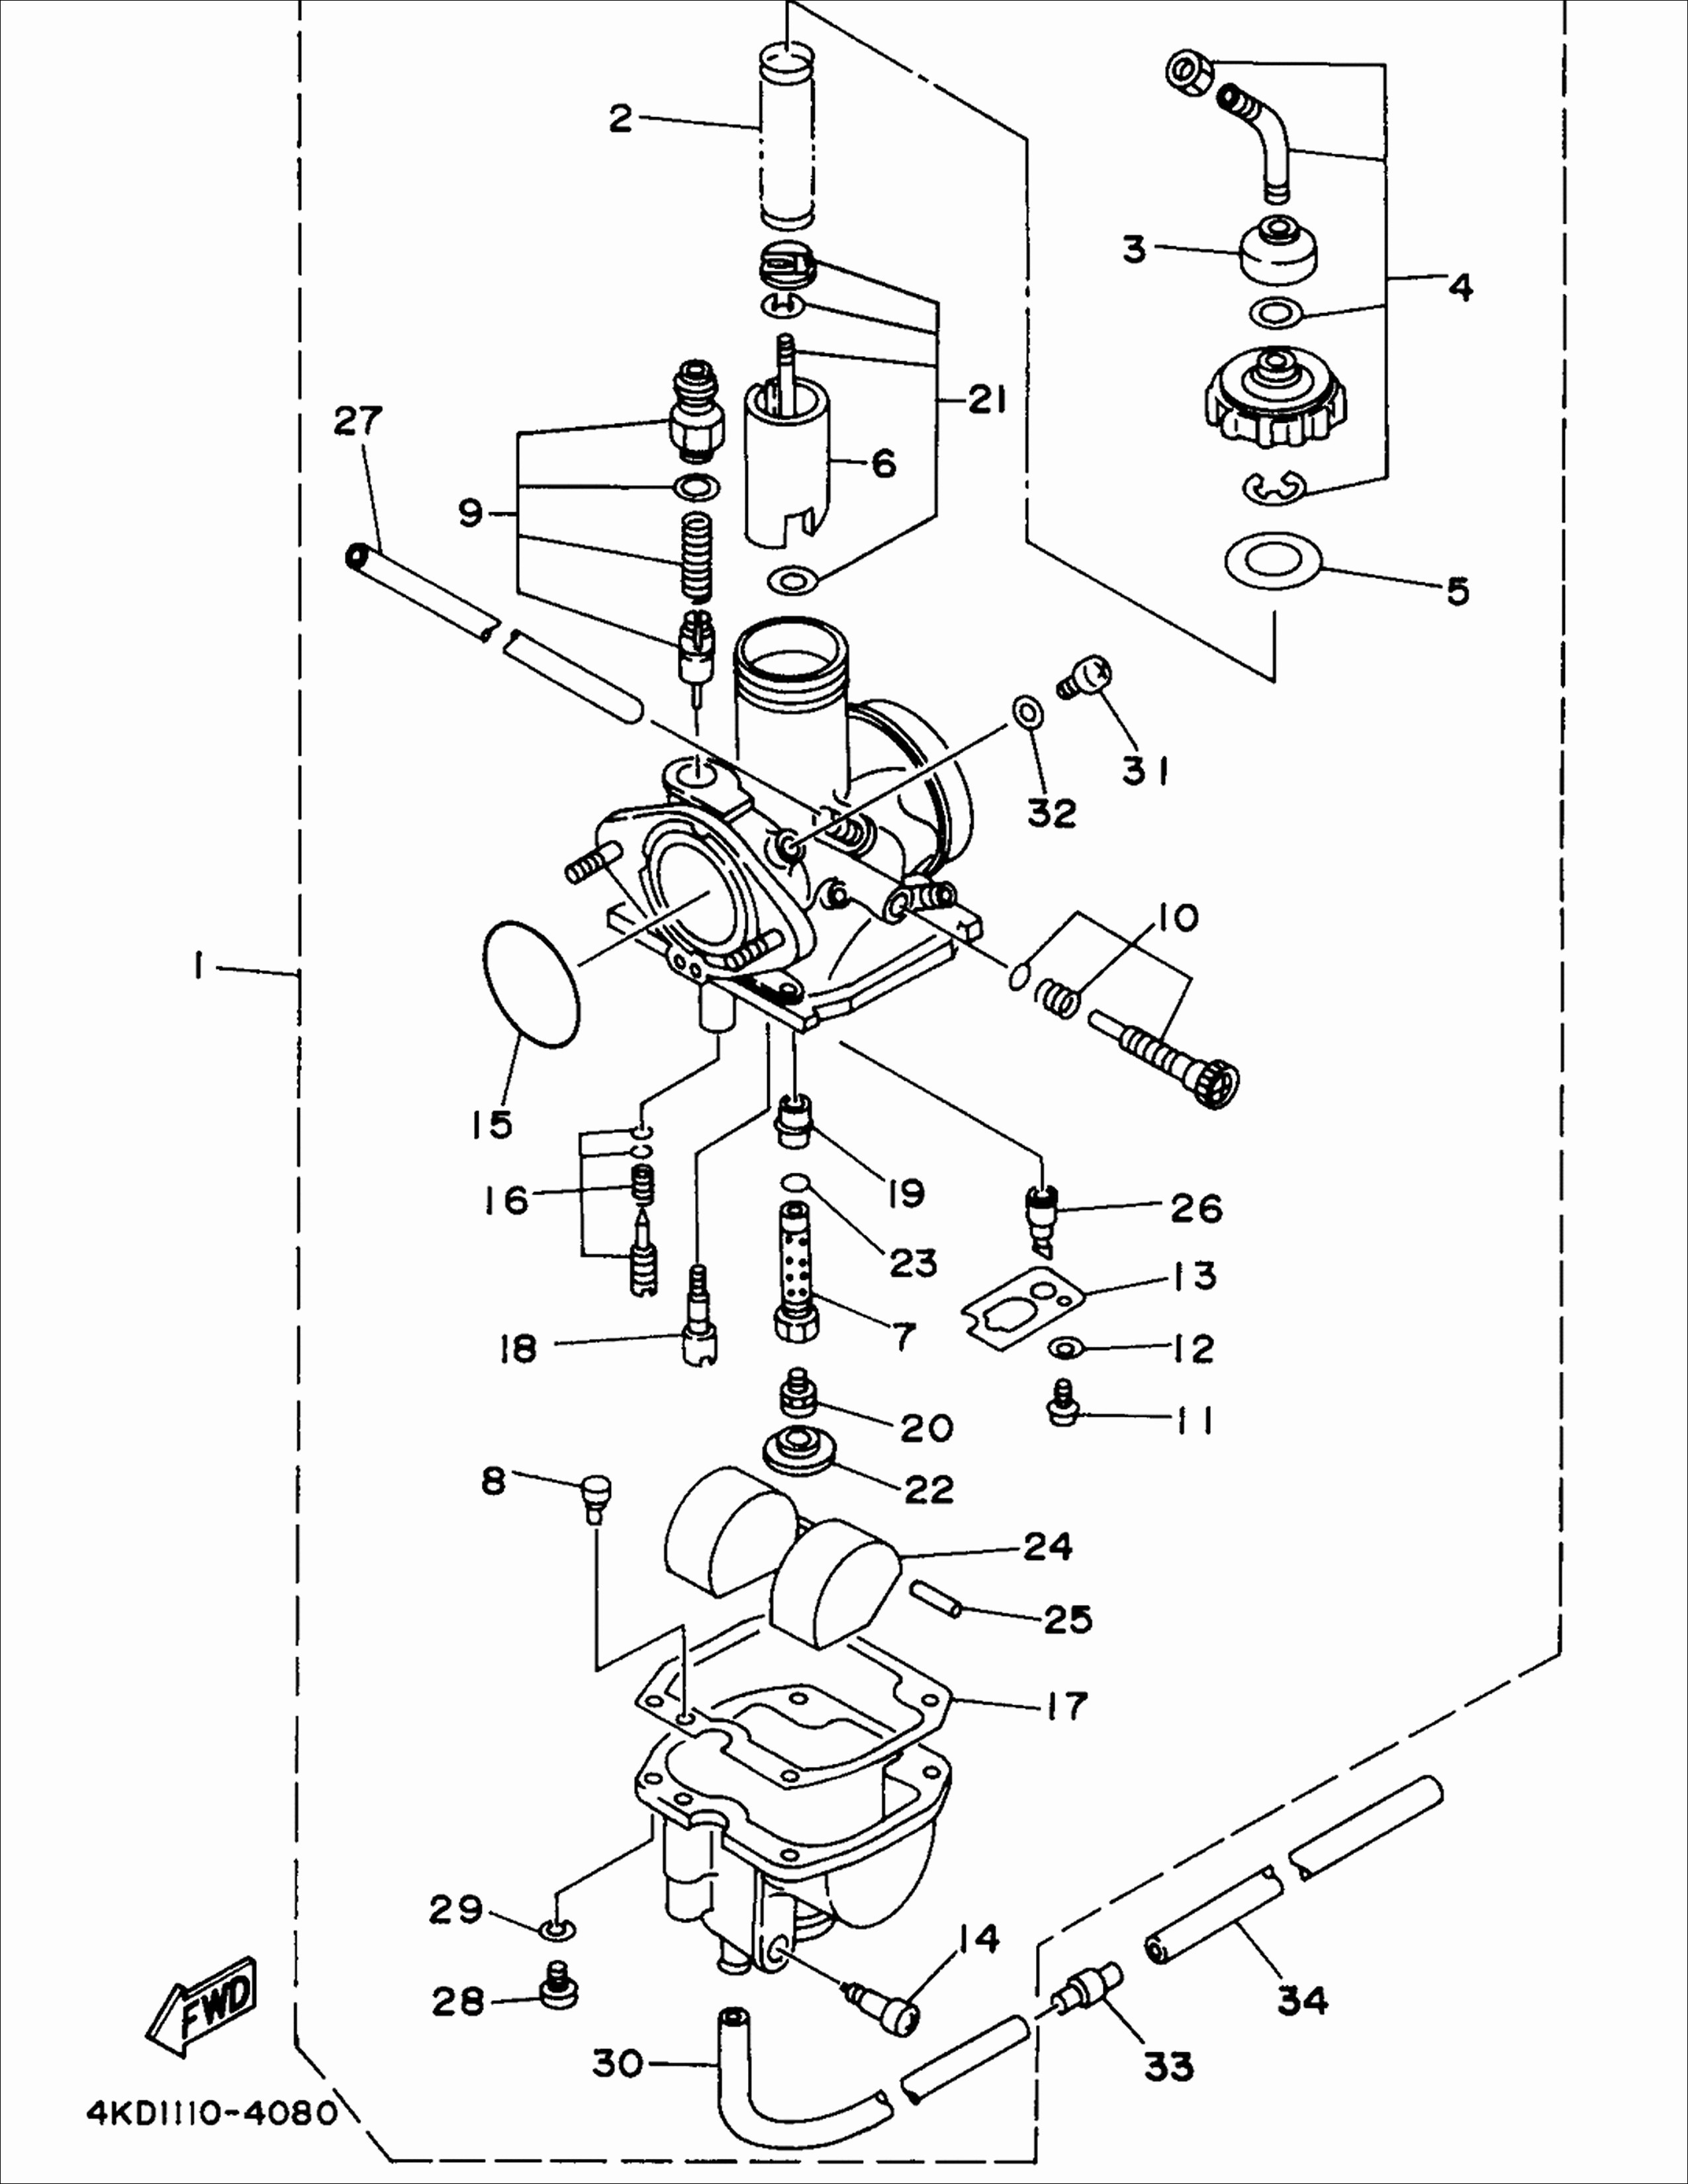 2002 pontiac montana engine diagram wiring diagram for